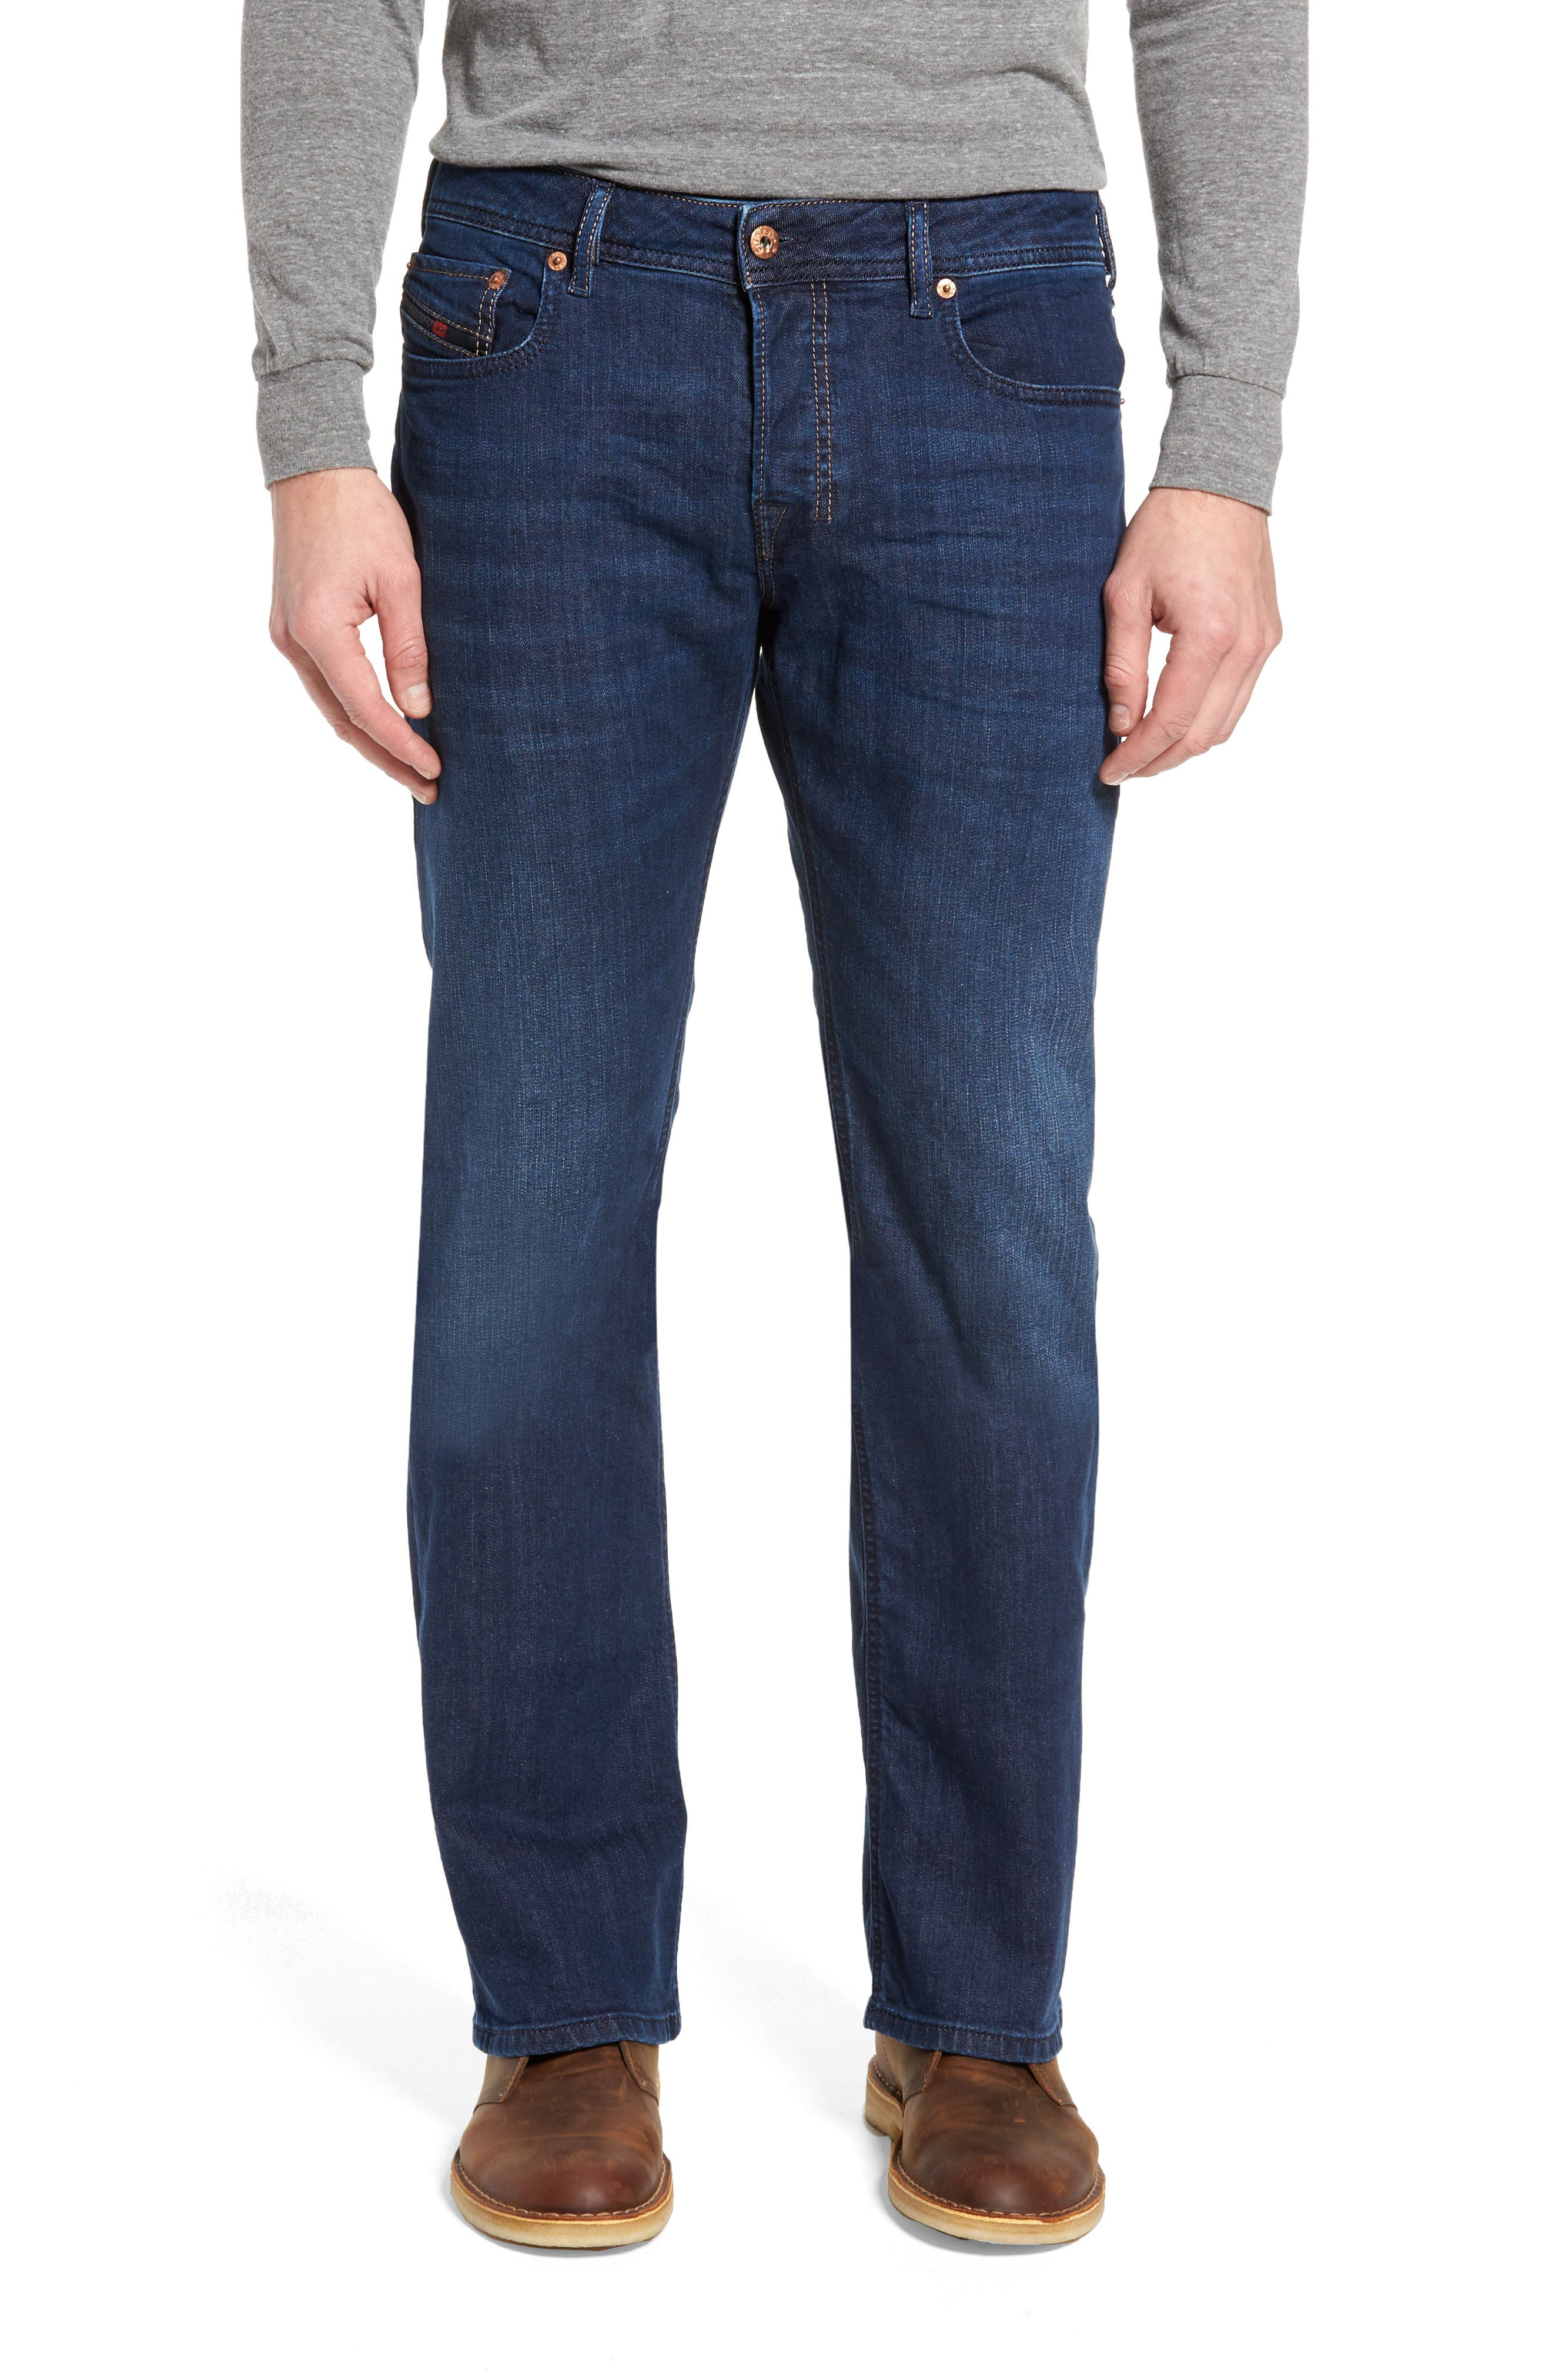 Zatiny Bootcut Jeans,                         Main,                         color, 084Nr